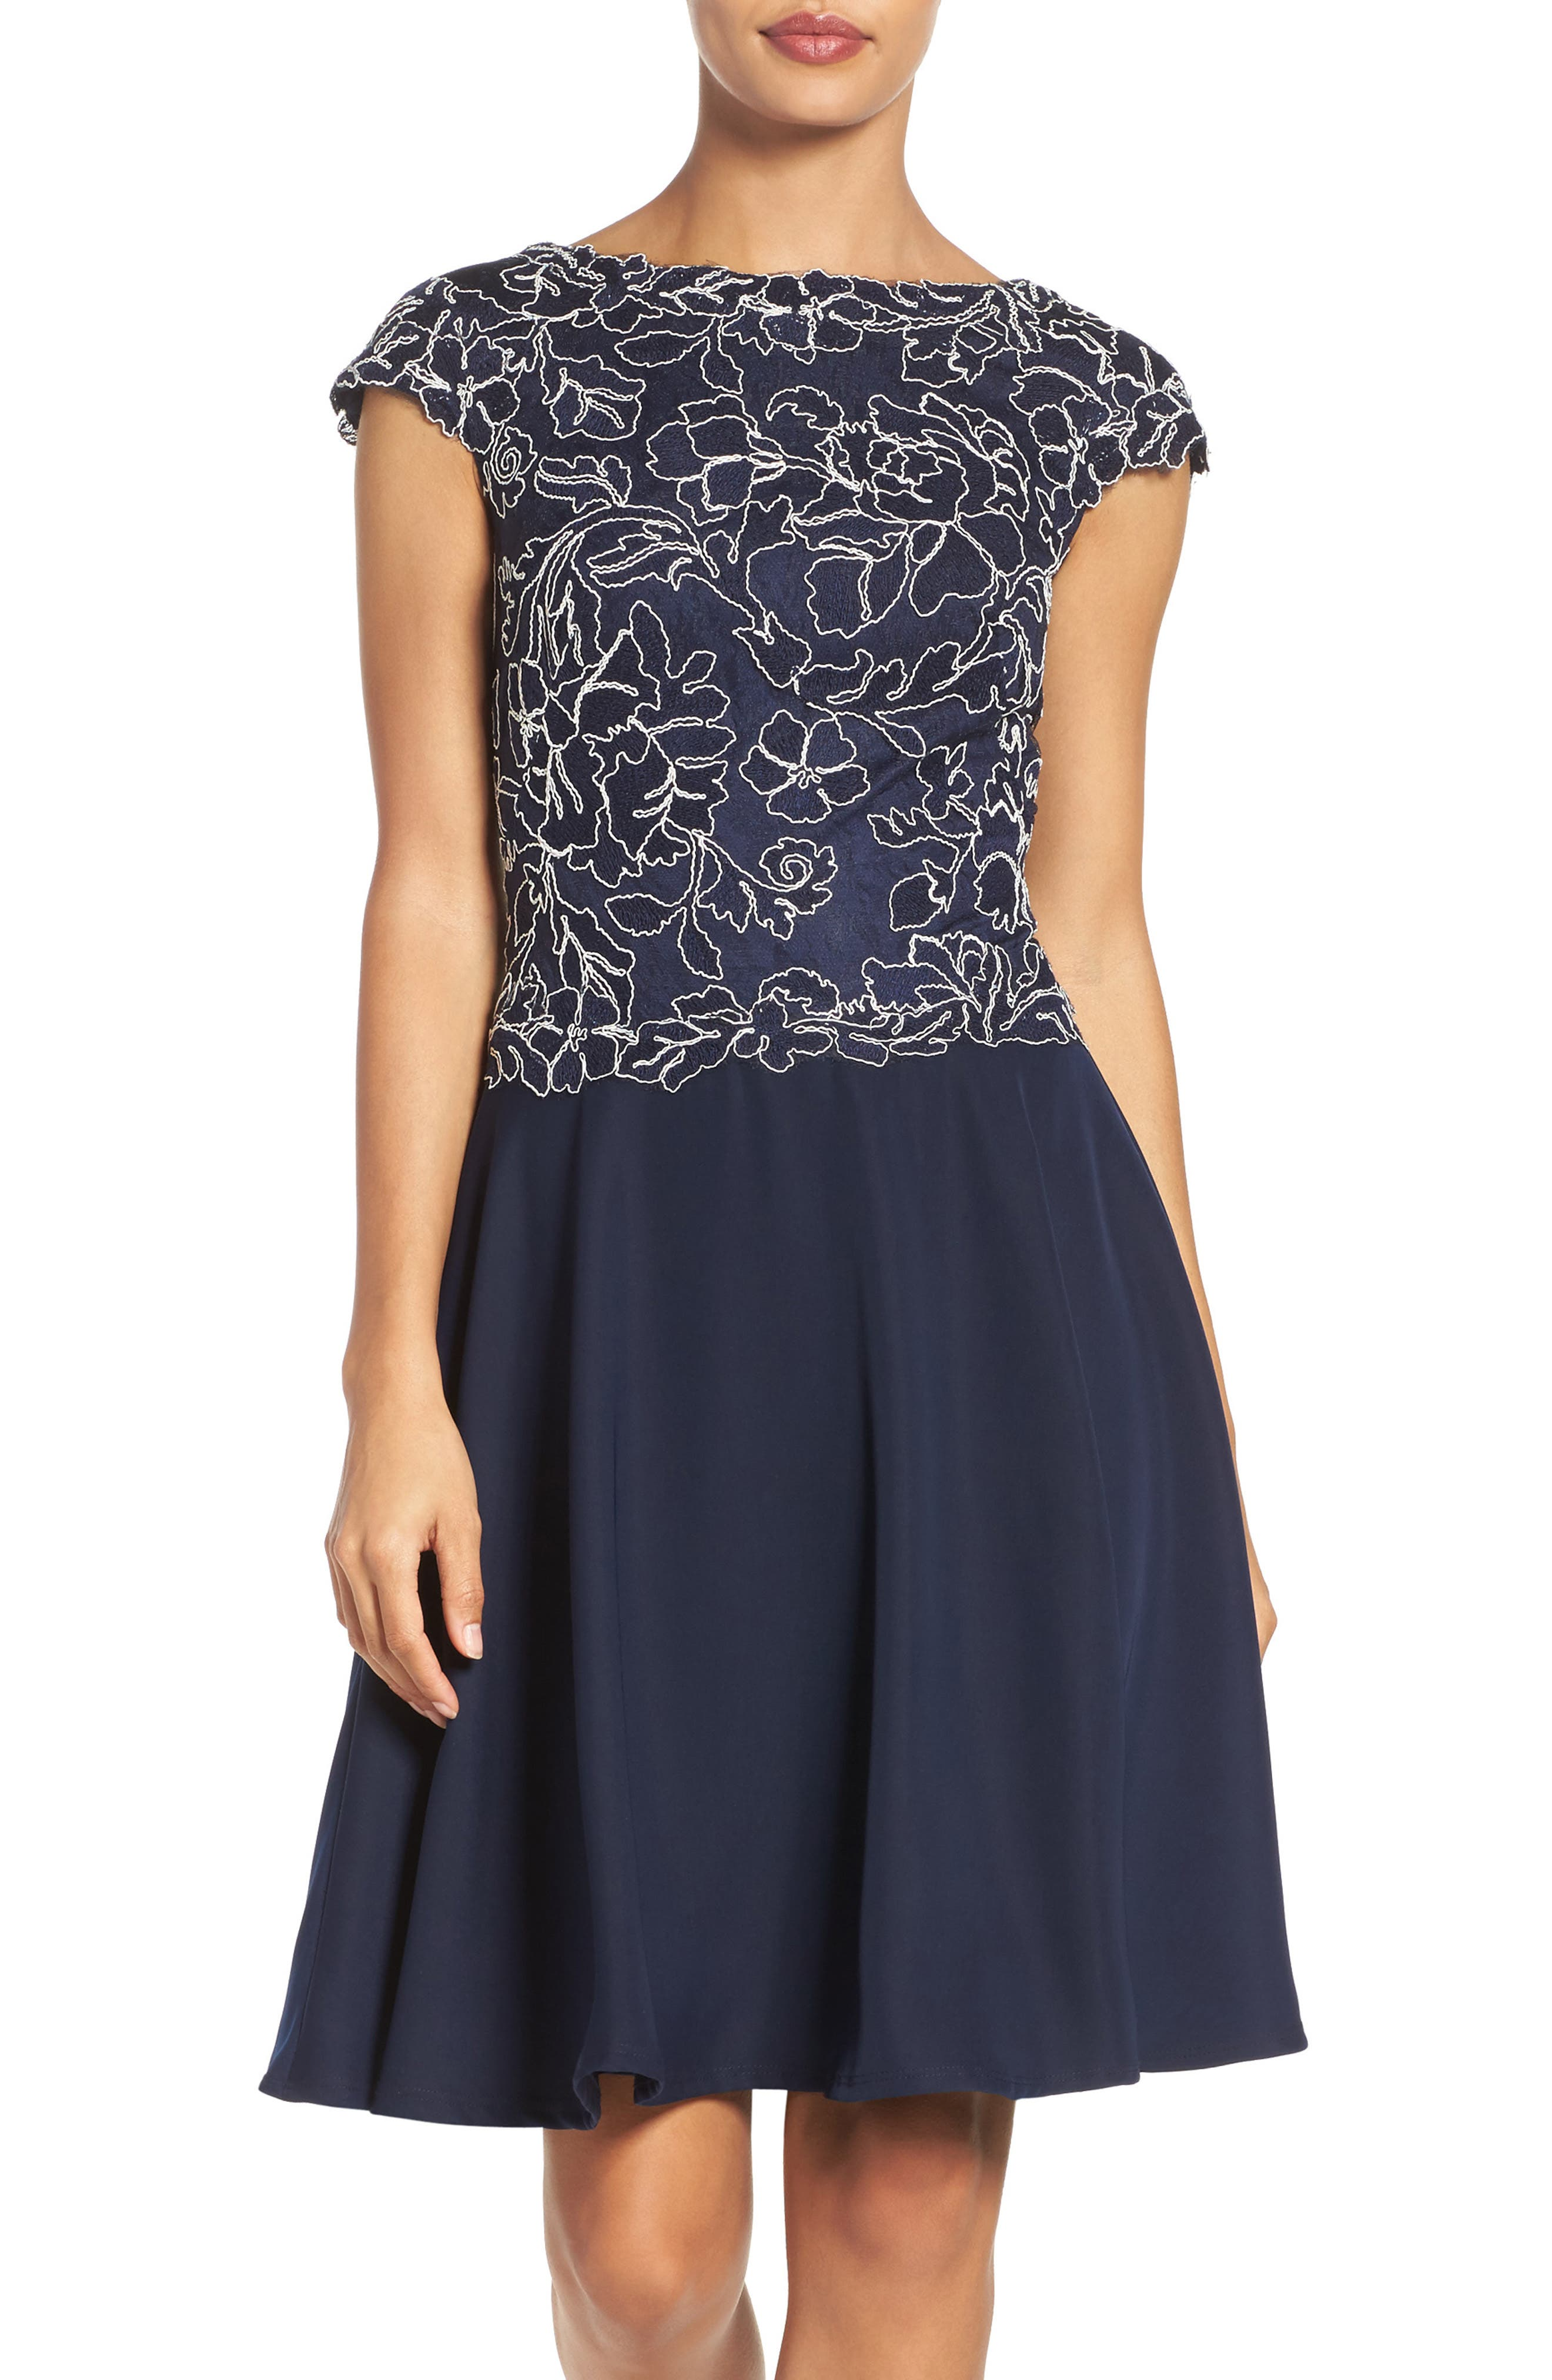 Tadashi Shoji Embroidered Lace Fit & Flare Dress (Regular & Petite)